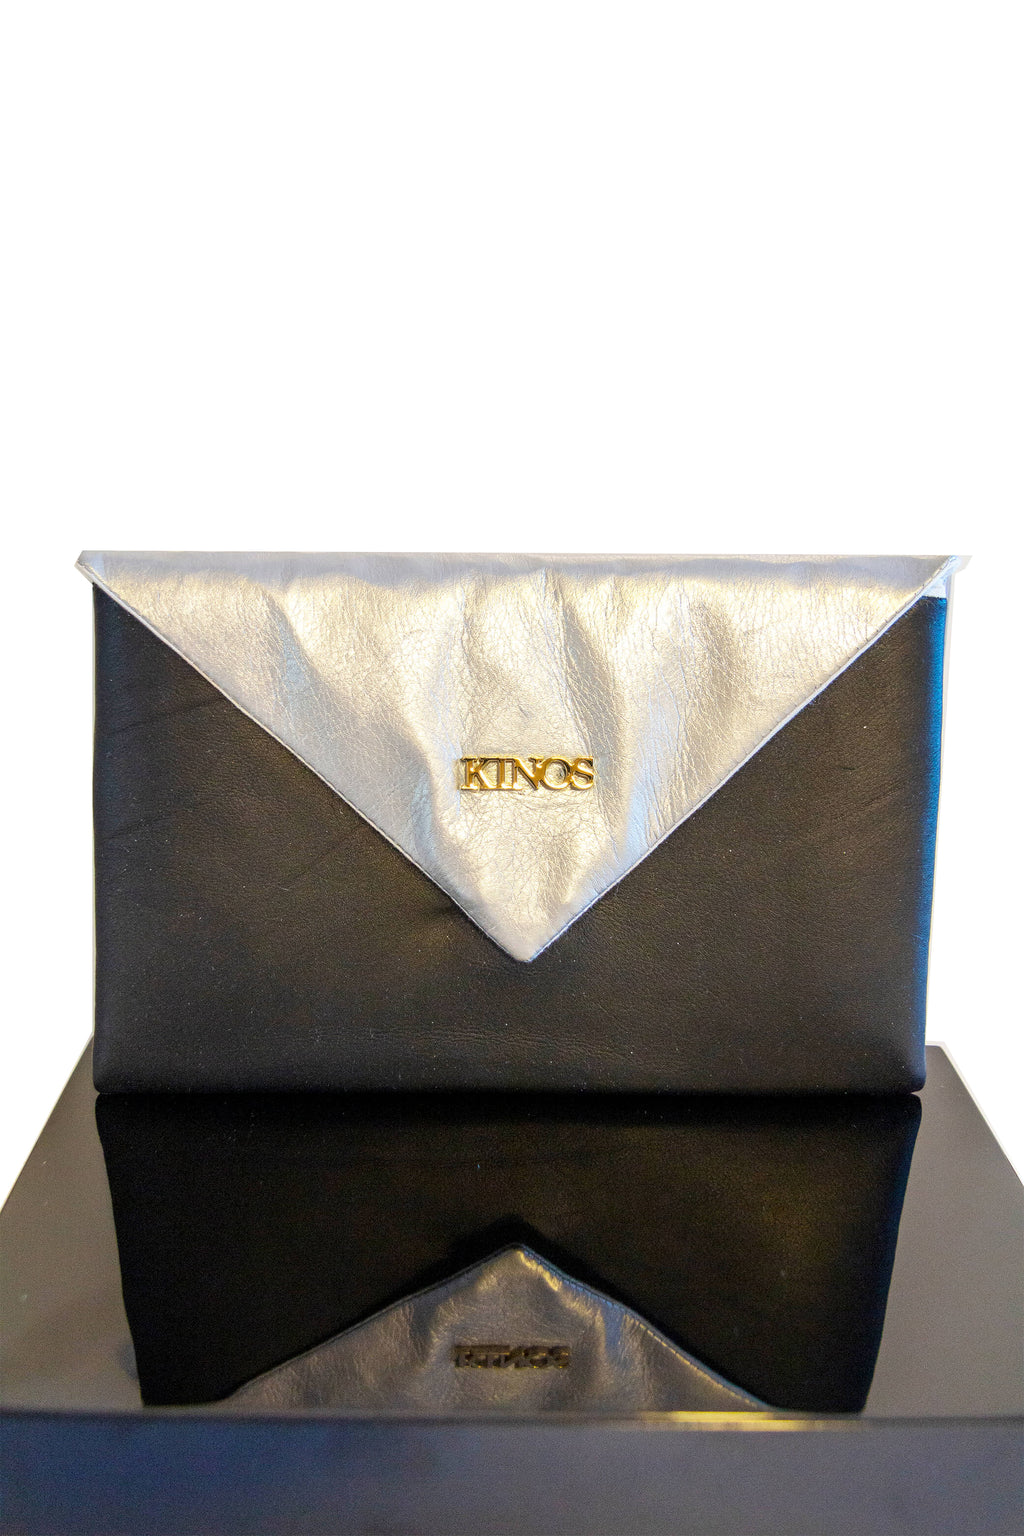 Black and silver reindeer leather Arctic Clutch by Kinos Design made in Rovaniemi Finland